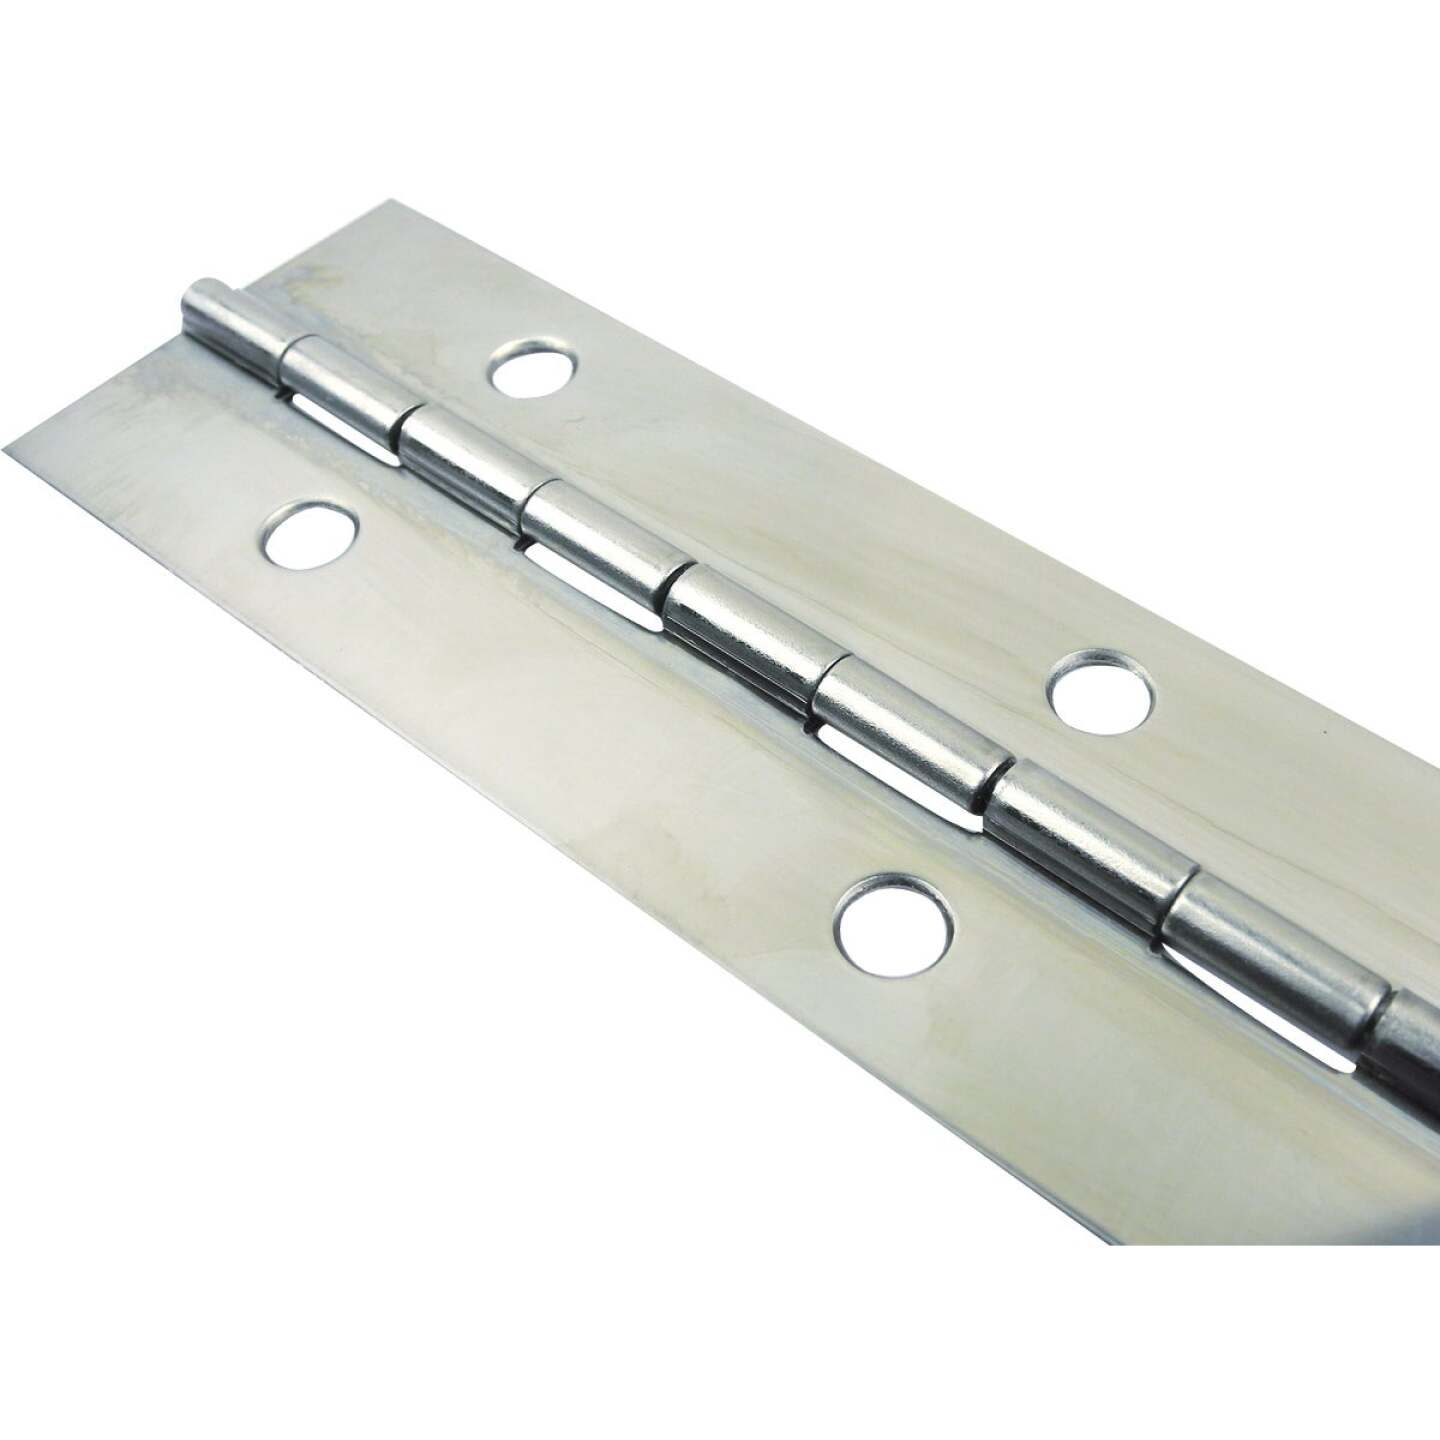 Seachoice Stainless Steel 1-1/2 In.x 6 Ft. Continuous Hinge Image 1